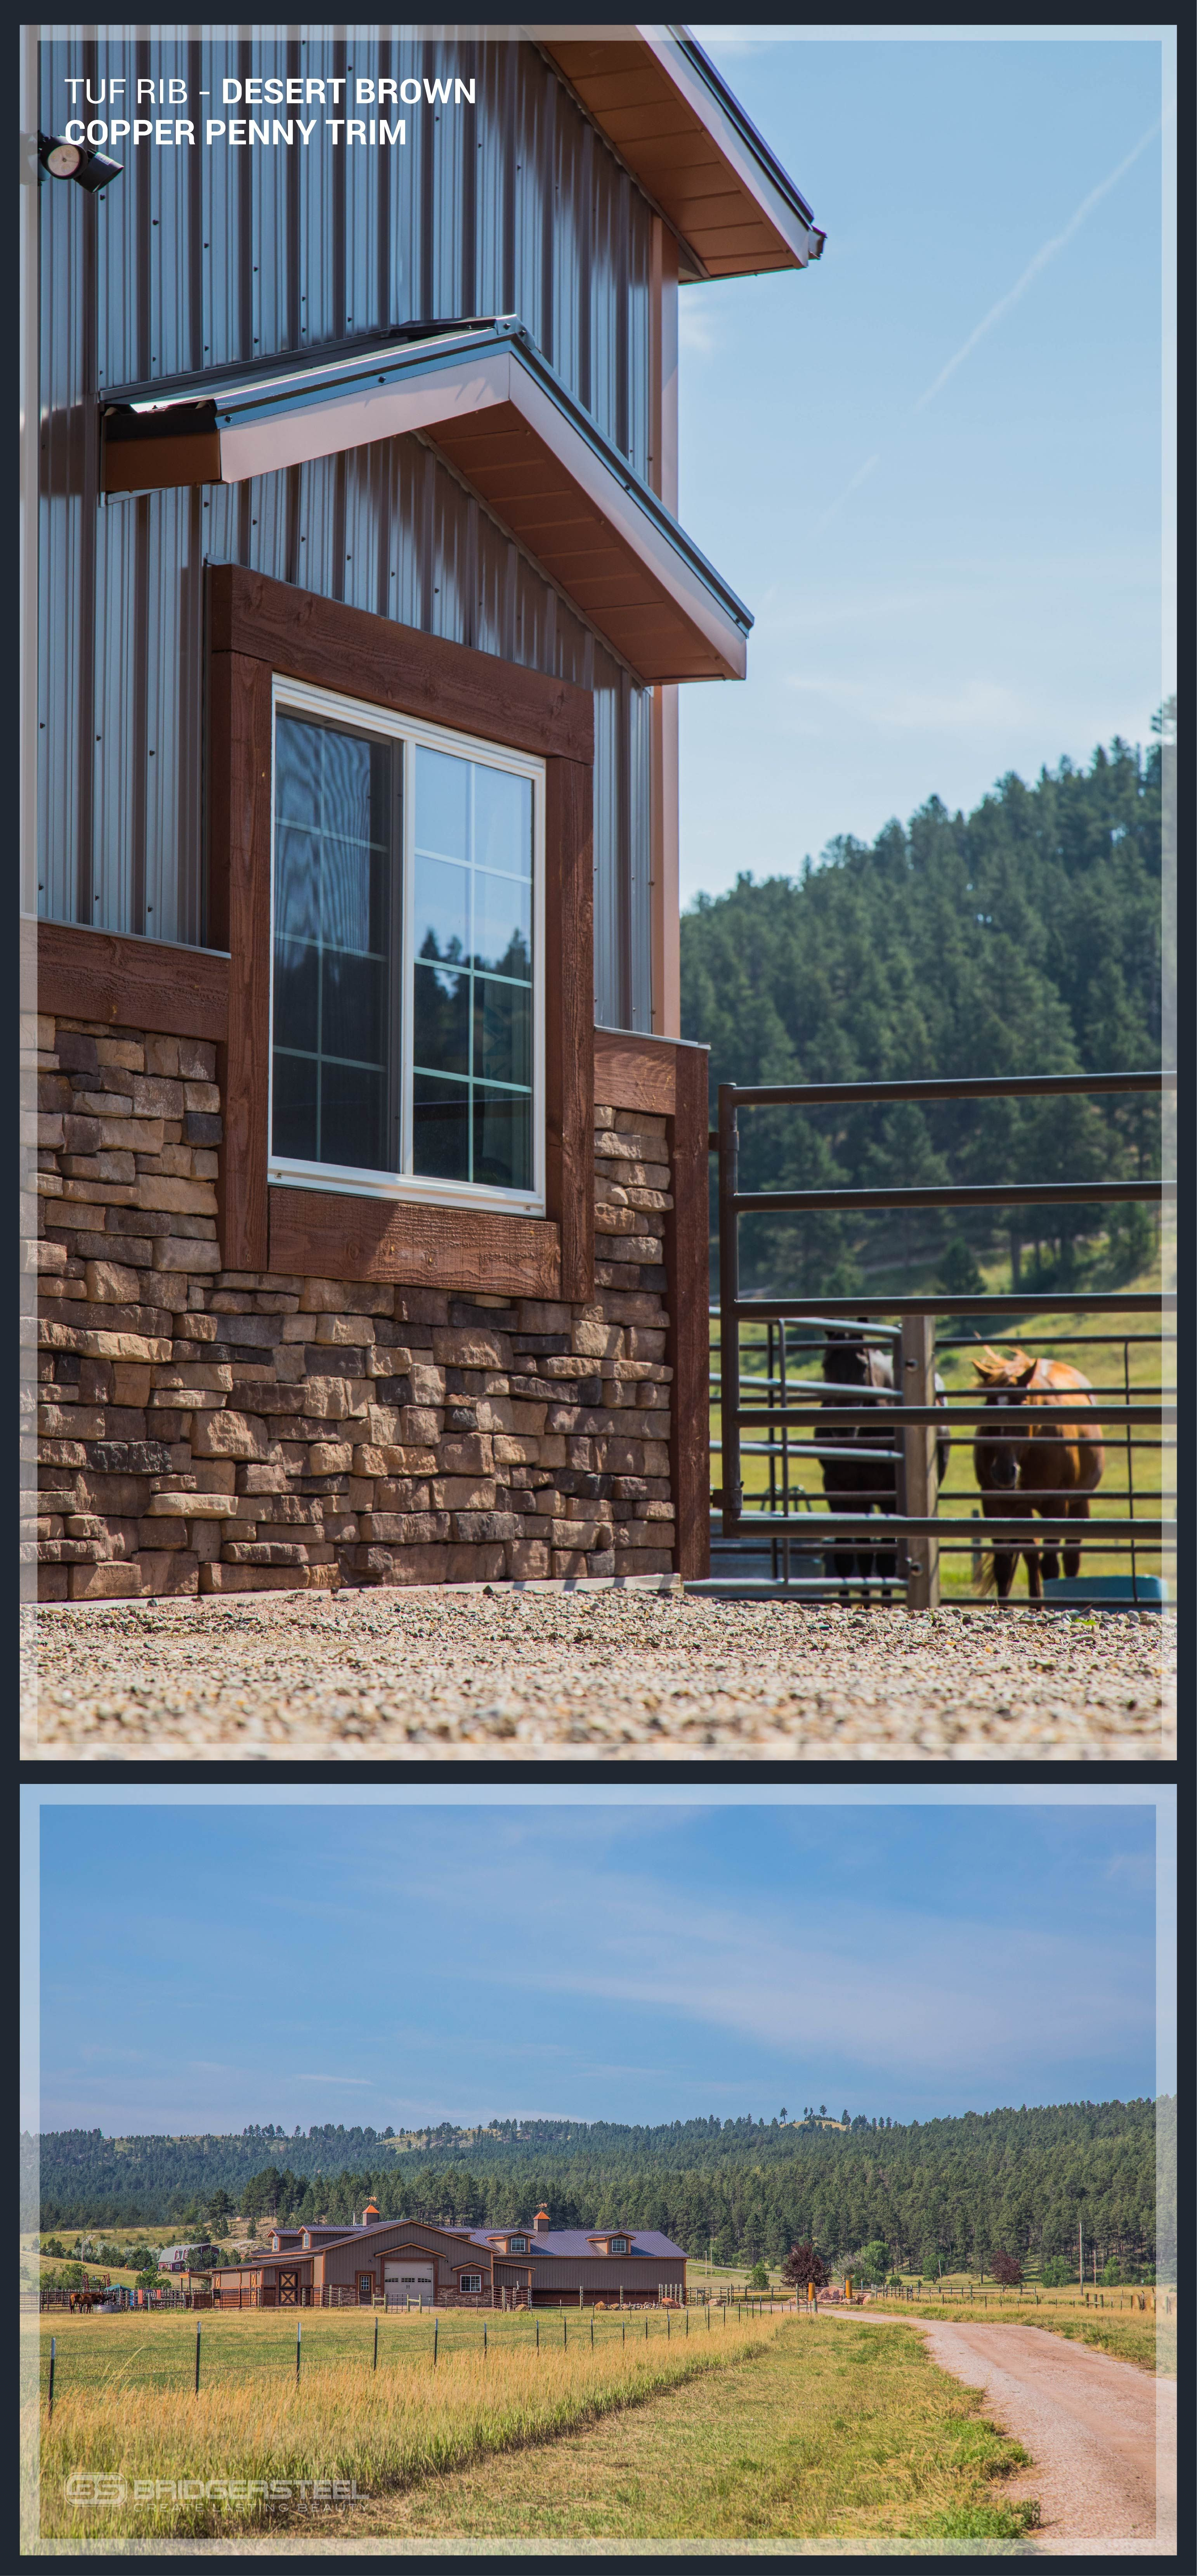 Desert Brown Tuf Rib With Copper Penny Trim Looks Gorgeous On This Barn And Home Metal Building Homes Cost Metal Building Homes House Exterior